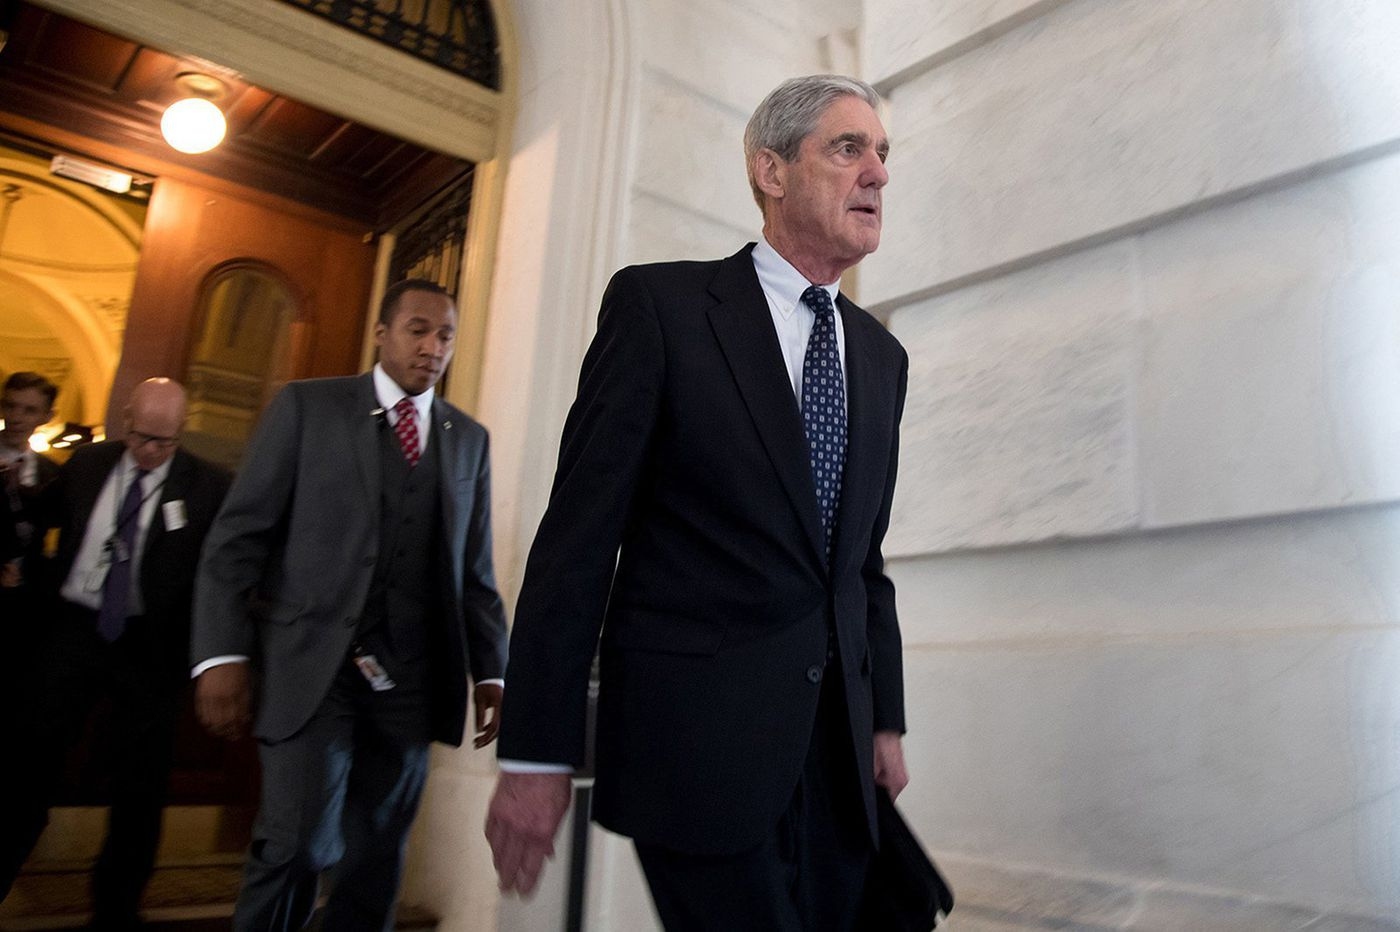 Mueller report sent to attorney general, signaling his Russia investigation has ended